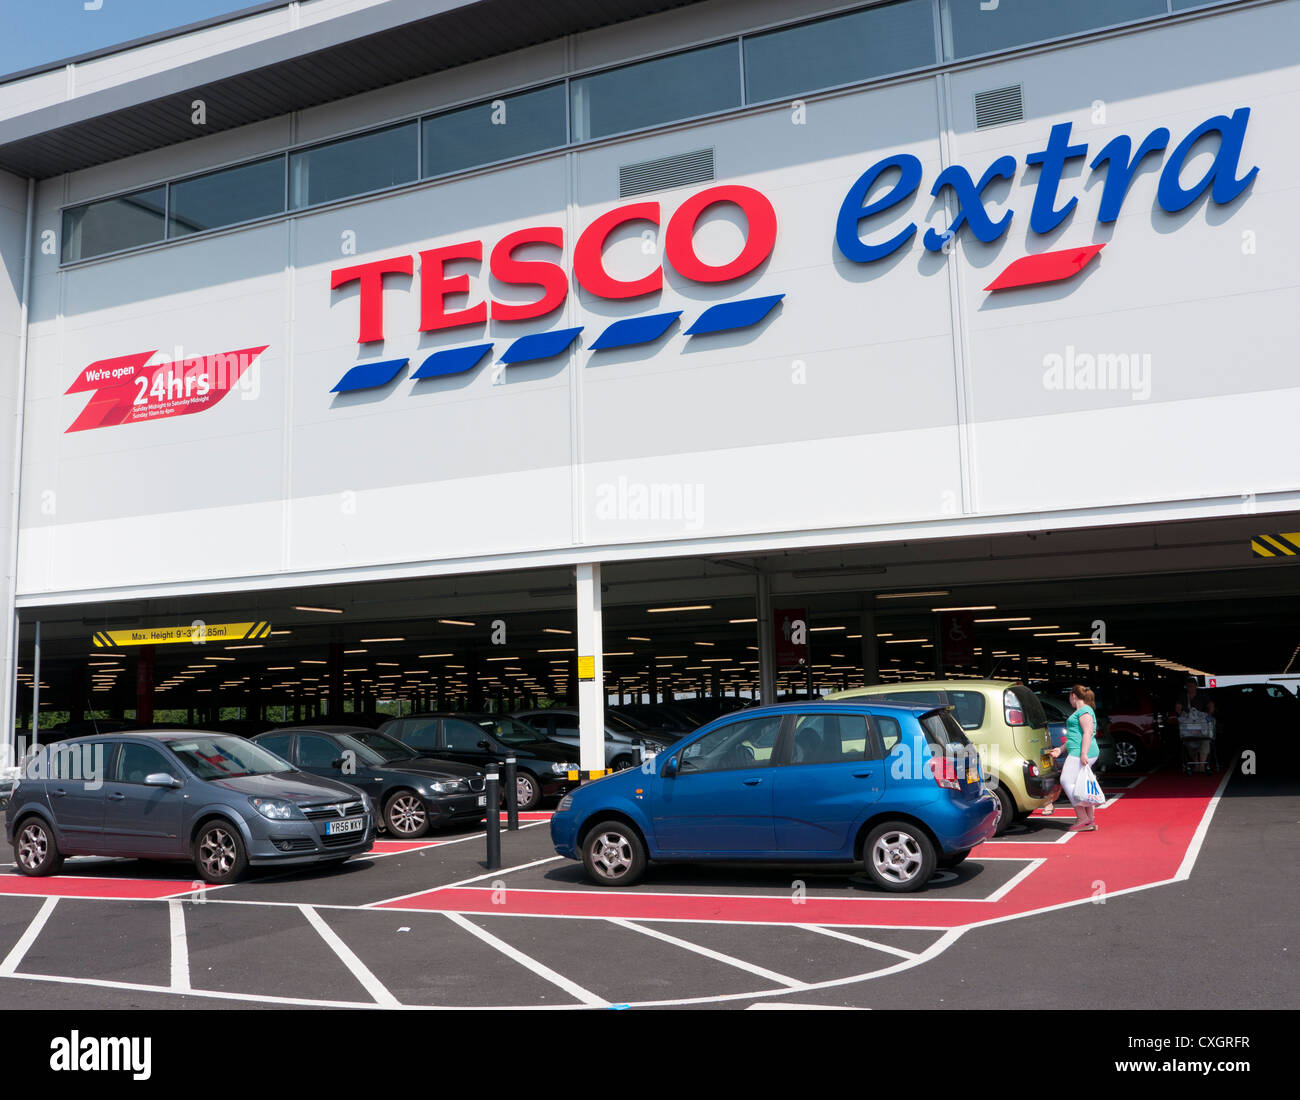 Tesco Extra in Britain with parking beneath the store for easy access - Stock Image